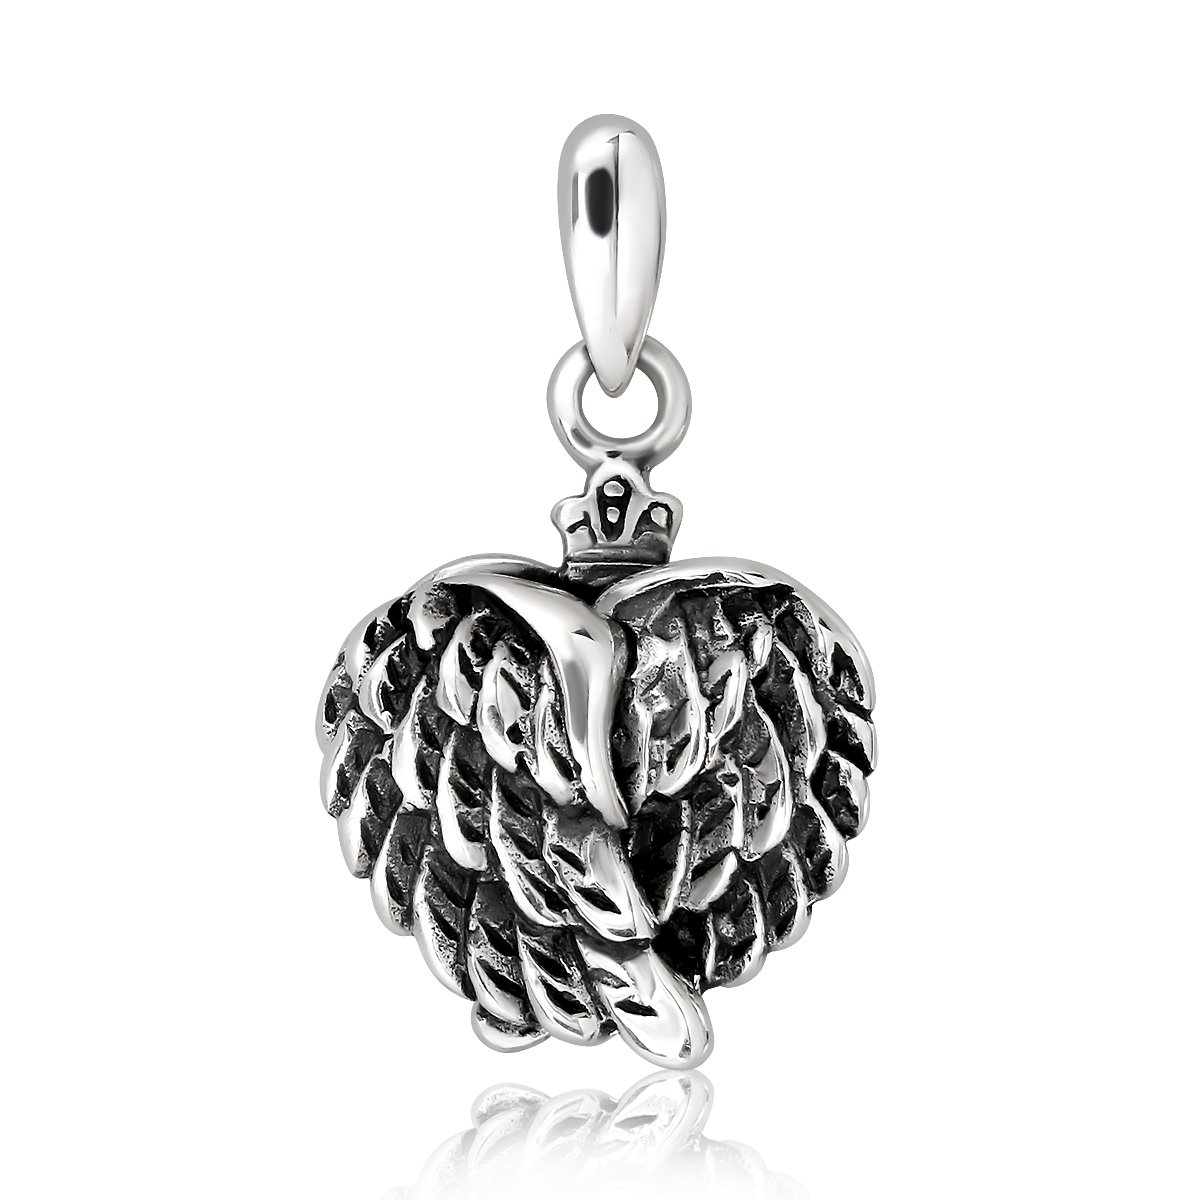 WithLoveSilver 925 Sterling Silver Charm My Angel Heart Openable Wings Pendant